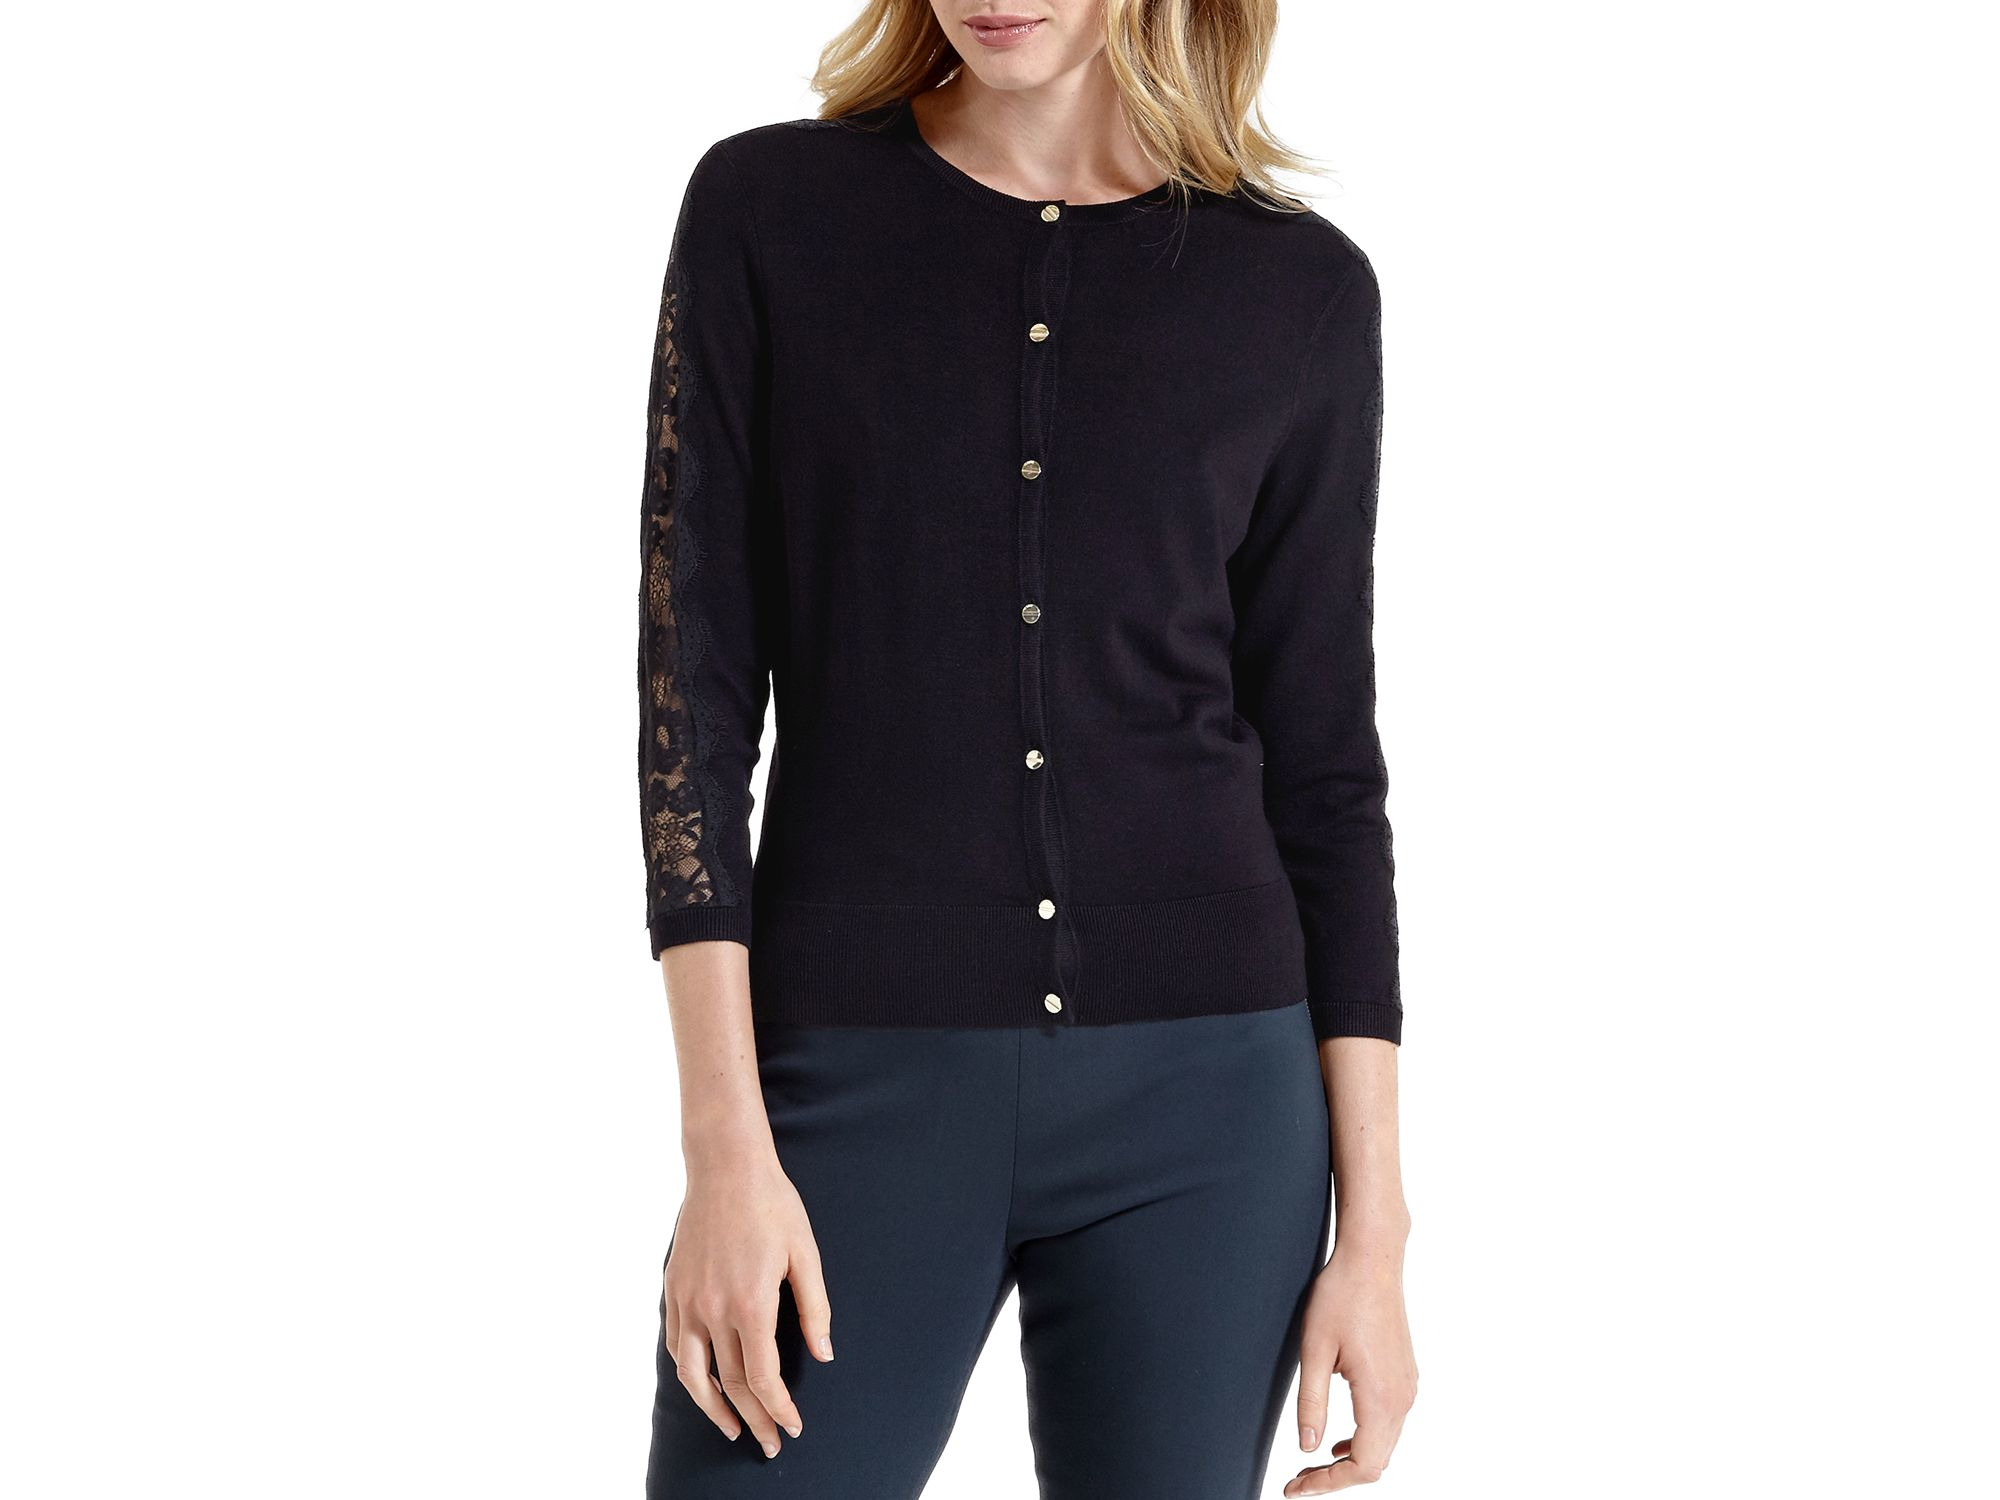 Ted baker Ginahh Lace Detail Cardigan in Black | Lyst